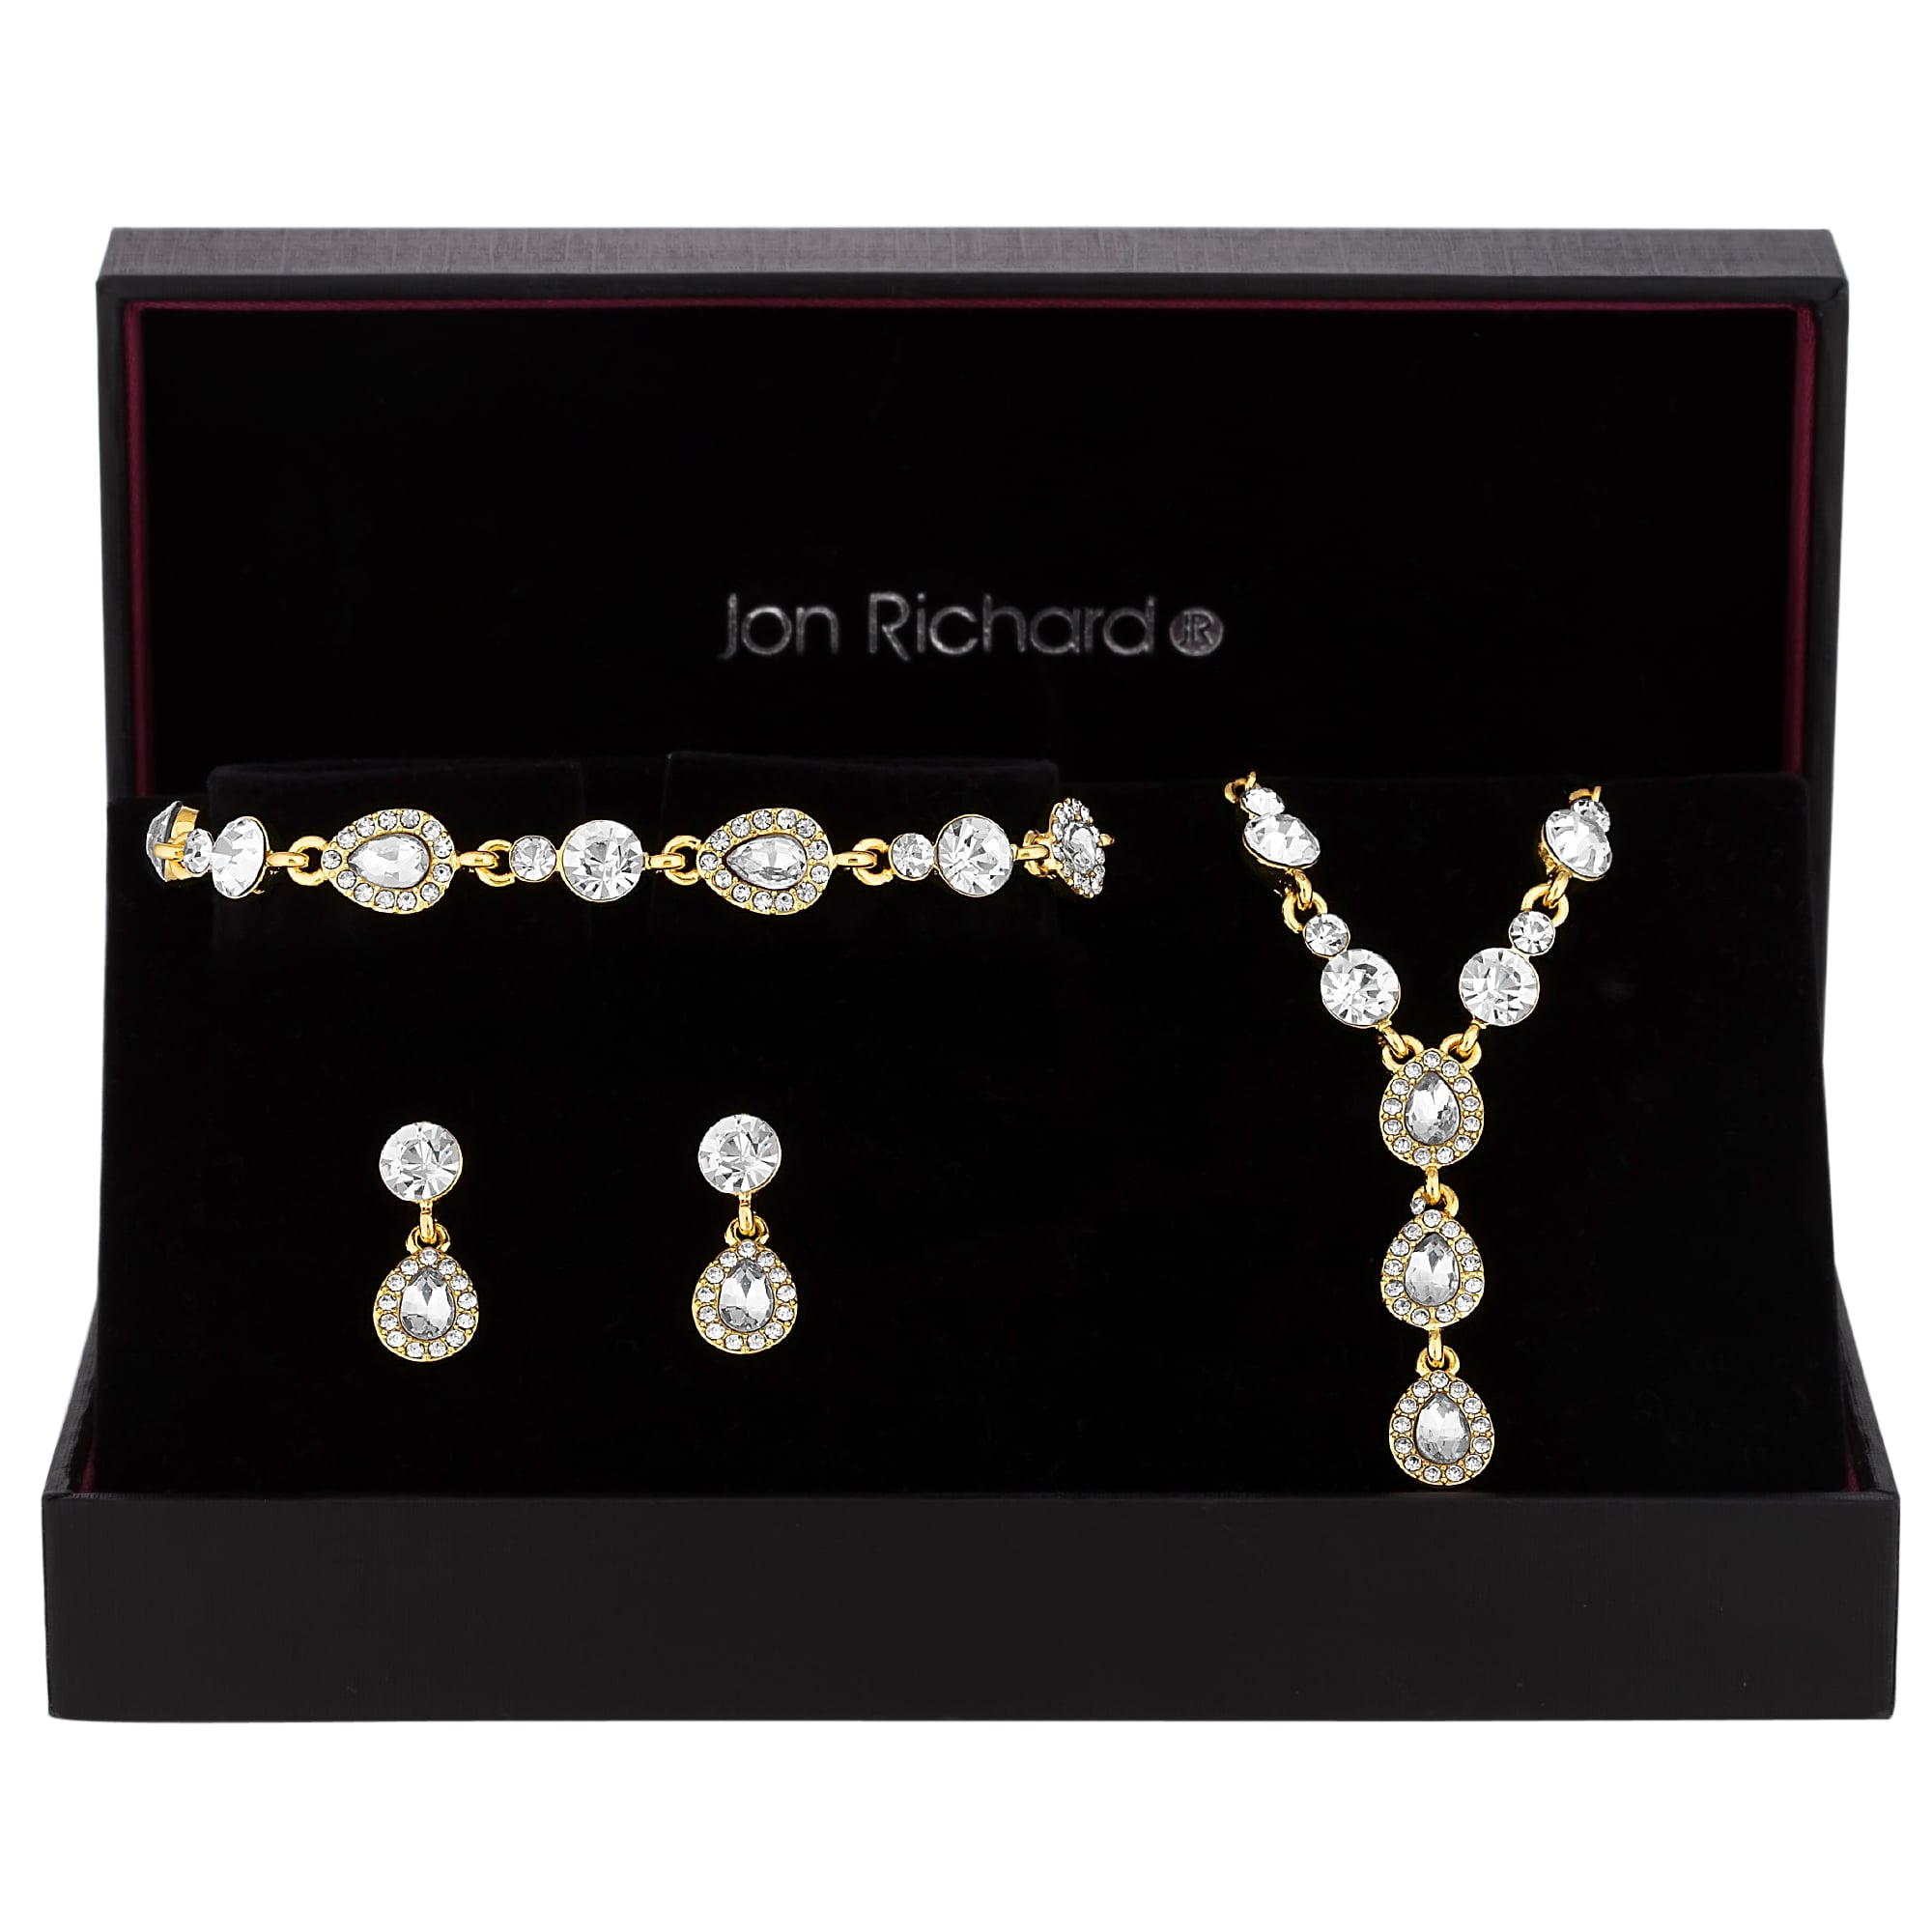 Jon Richard Gold Plated Crystal Peardrop Jewellery Set In A Gift Box